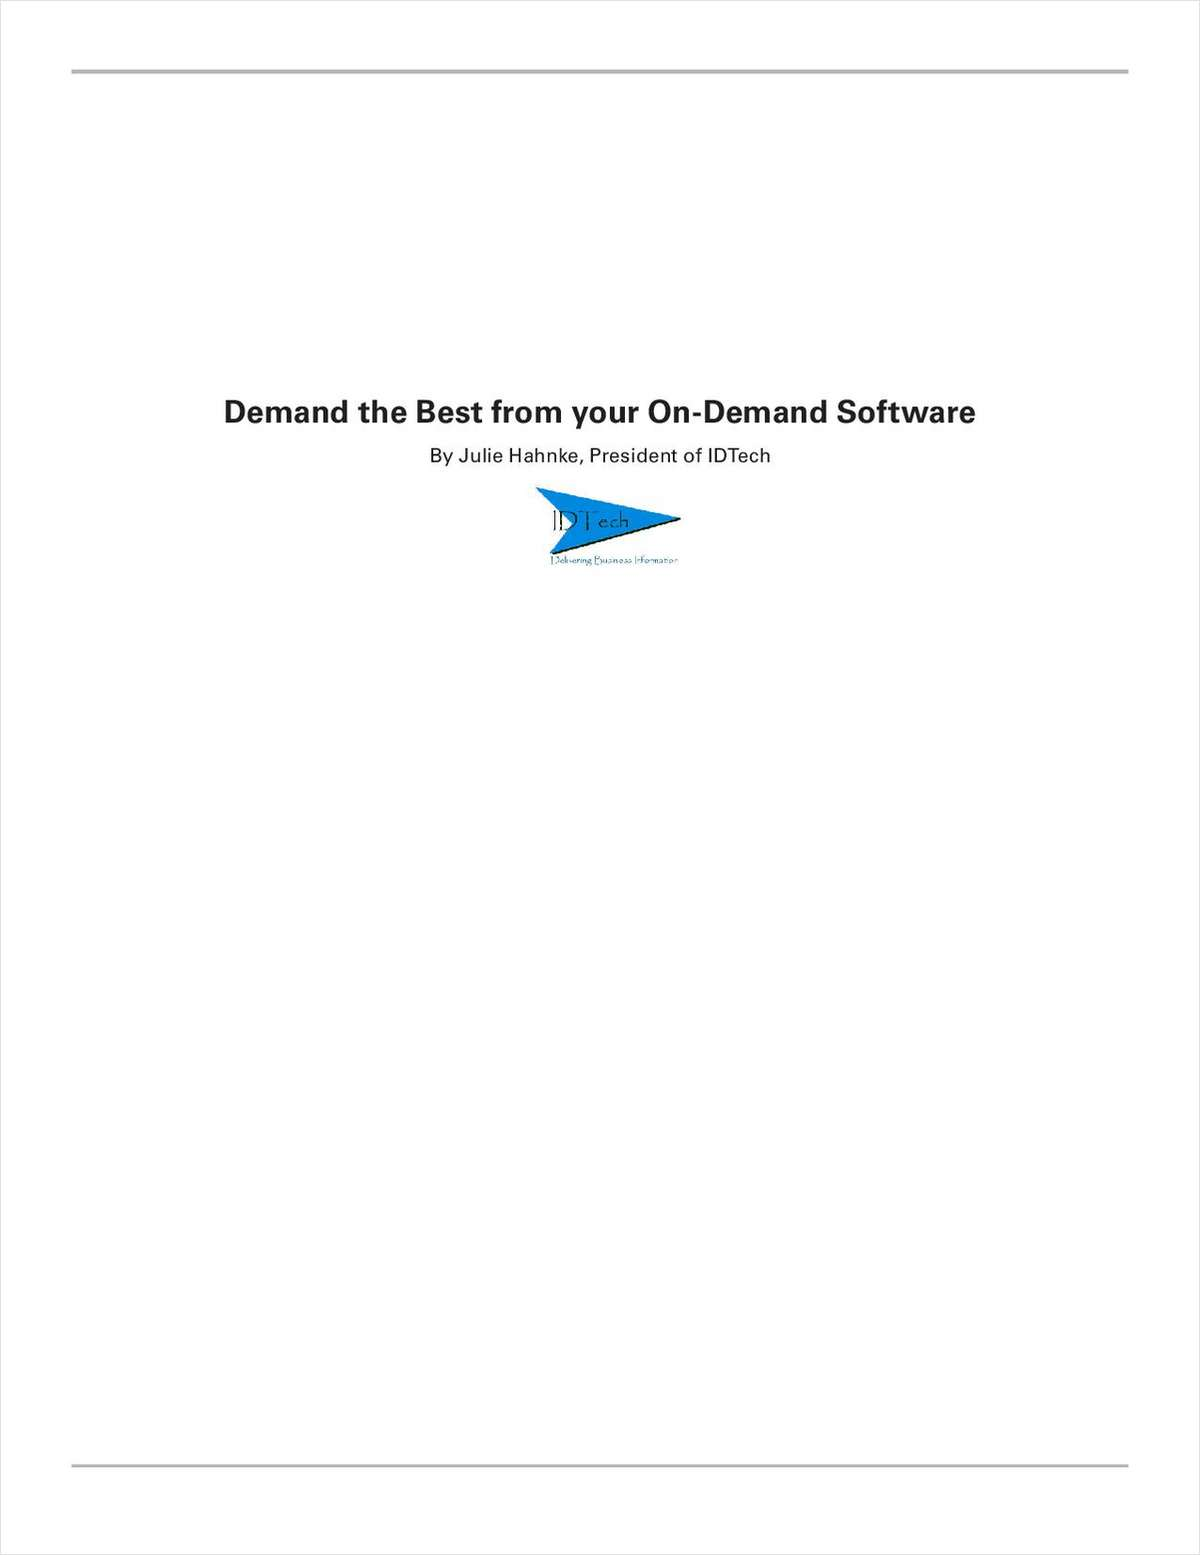 Demand the Best from Your On-Demand Software